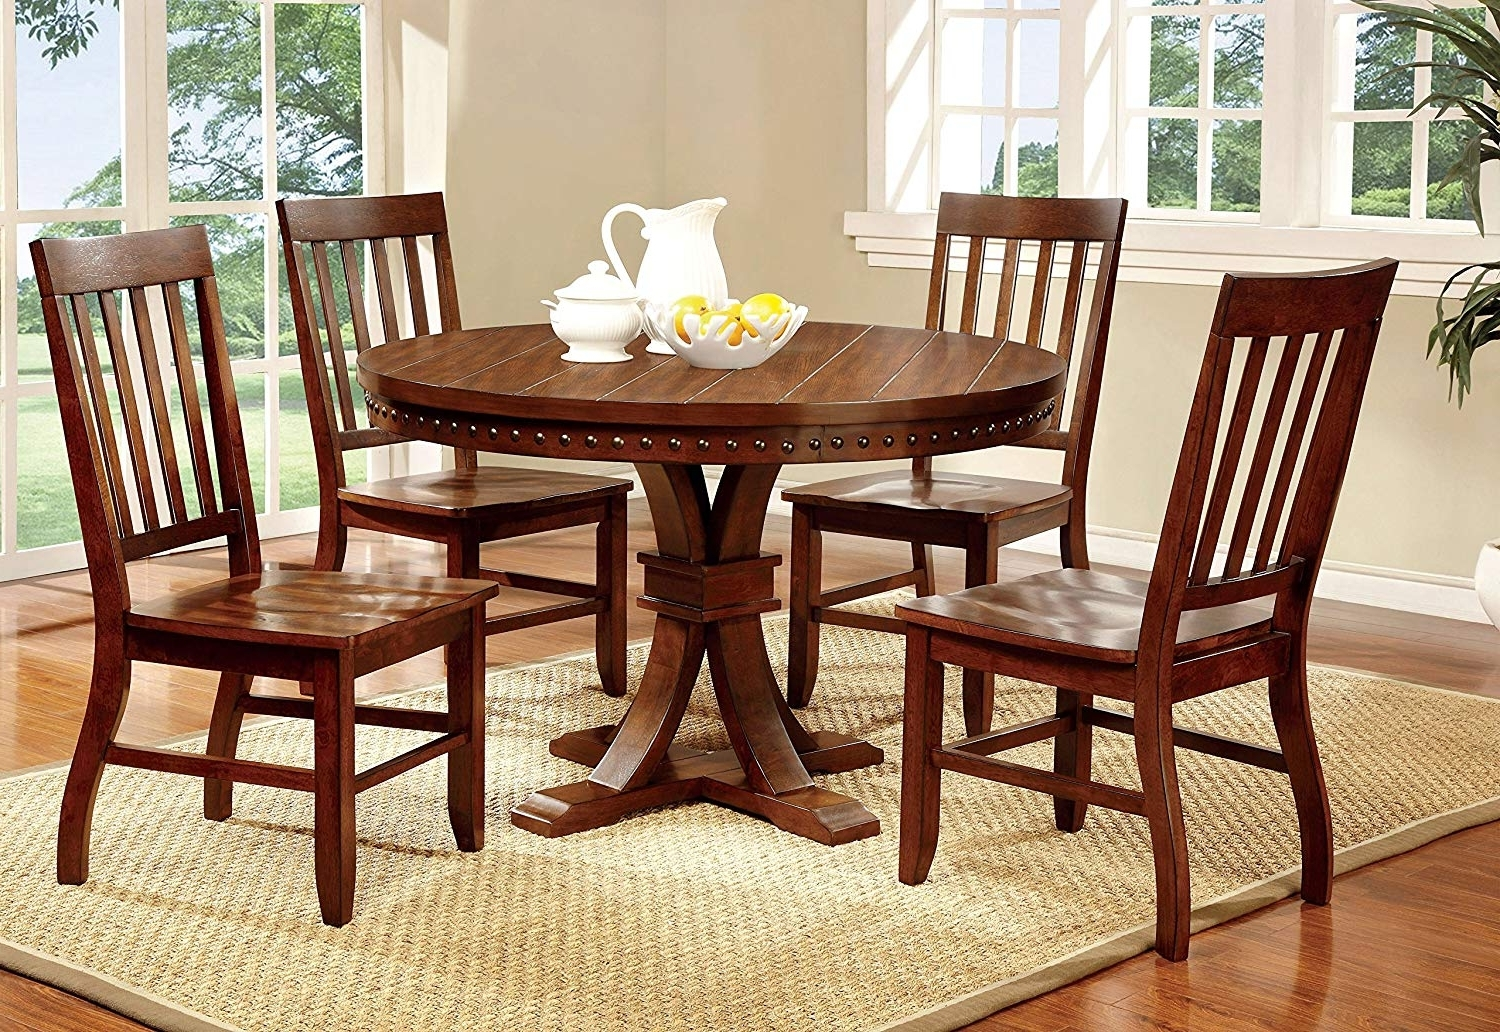 Famous Amazon – Furniture Of America Castile 5 Piece Transitional Round Throughout Black Wood Dining Tables Sets (View 11 of 25)